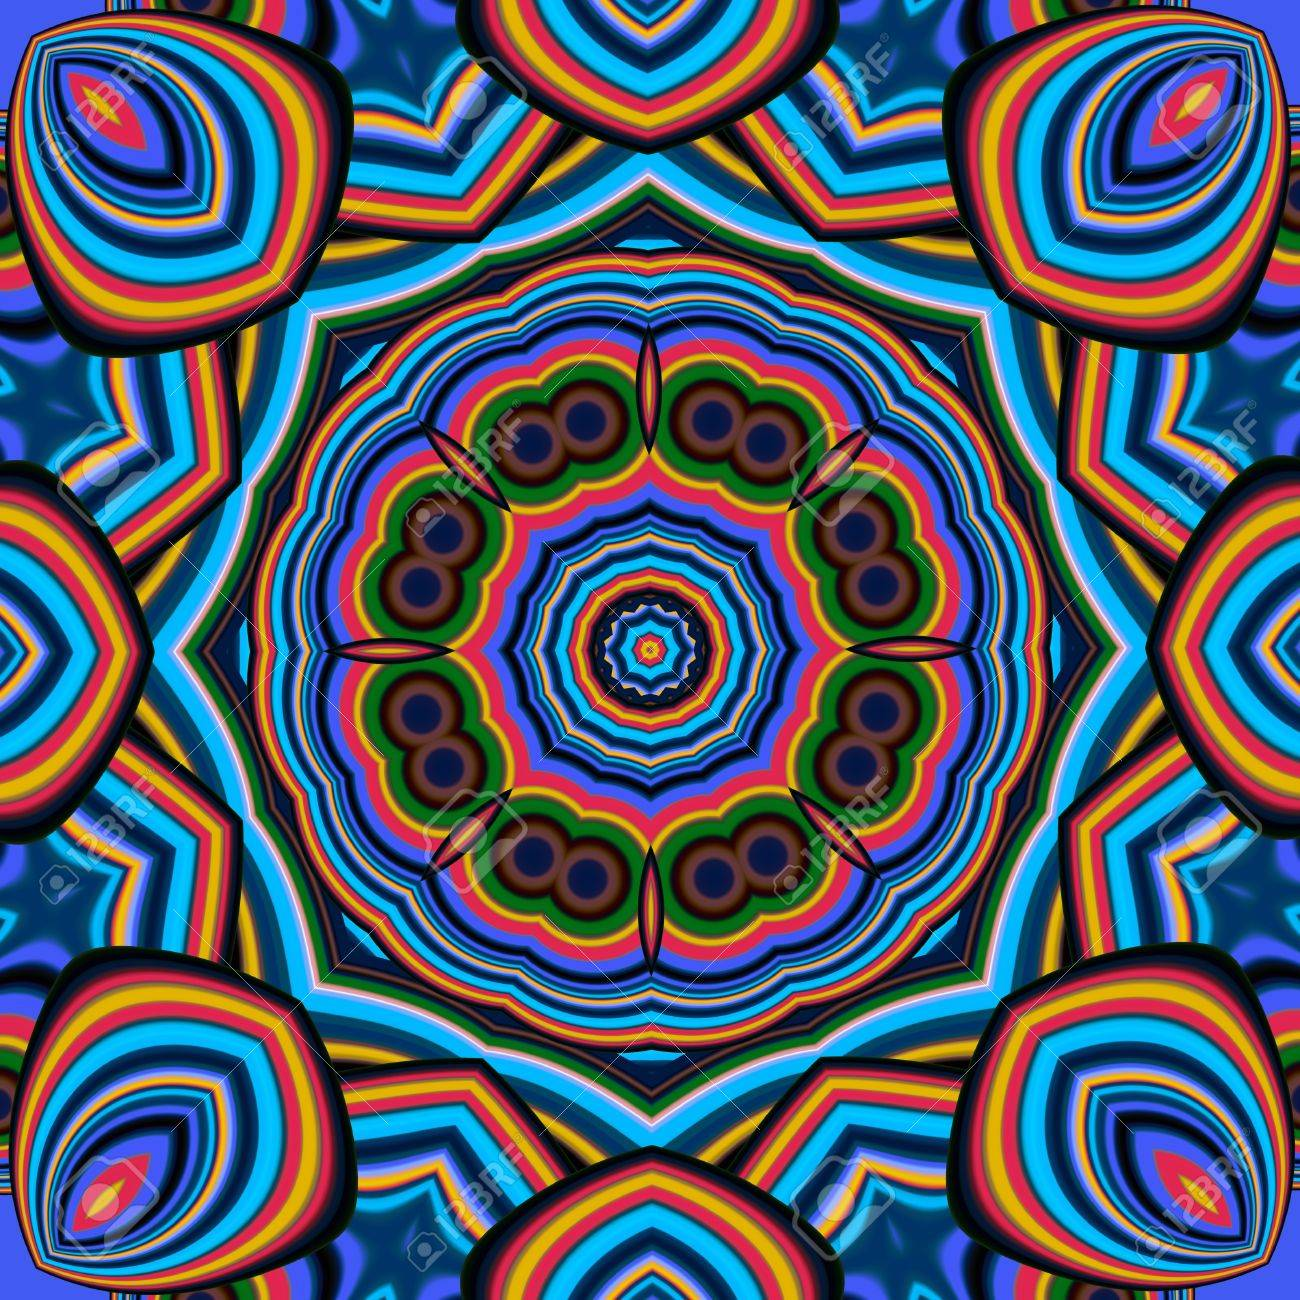 Creative Design To Cover Notebook ~ Colorful abstract mandala background. you can use it for invitations